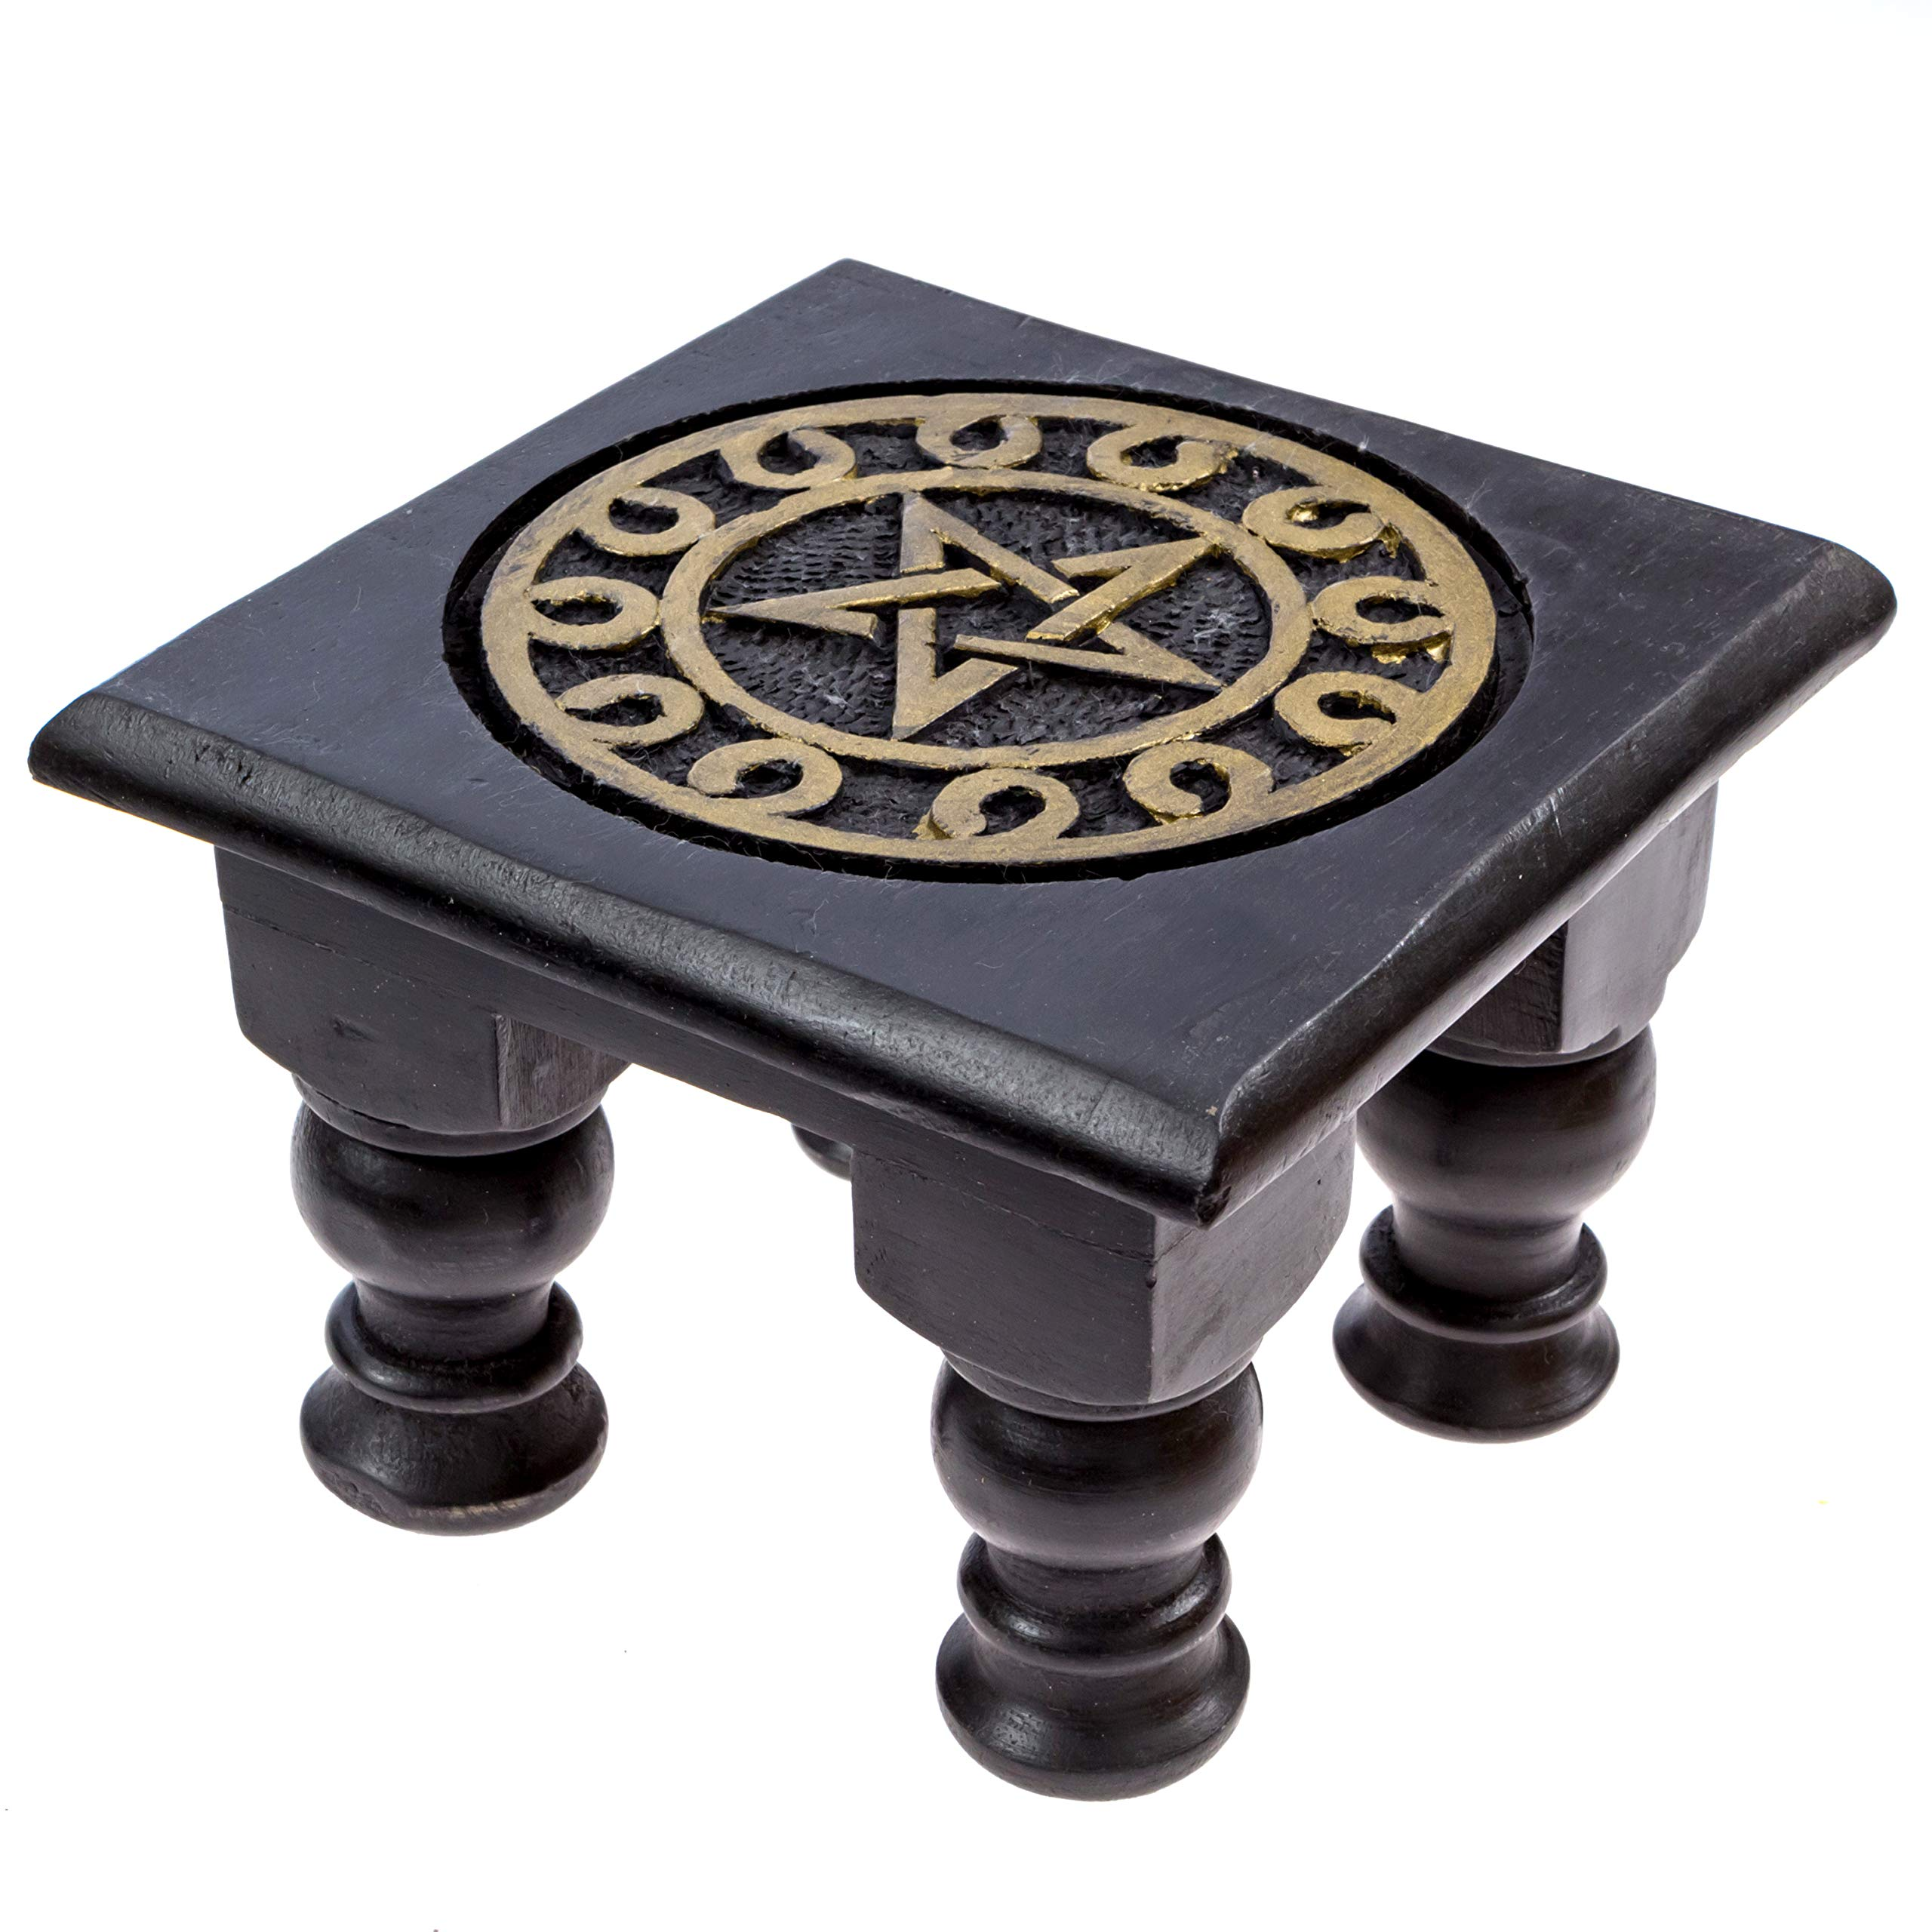 Alternative Imagination Deluxe Wiccan Altar Supply Kit Featuring Pentagram Altar Table by Alternative Imagination (Image #3)